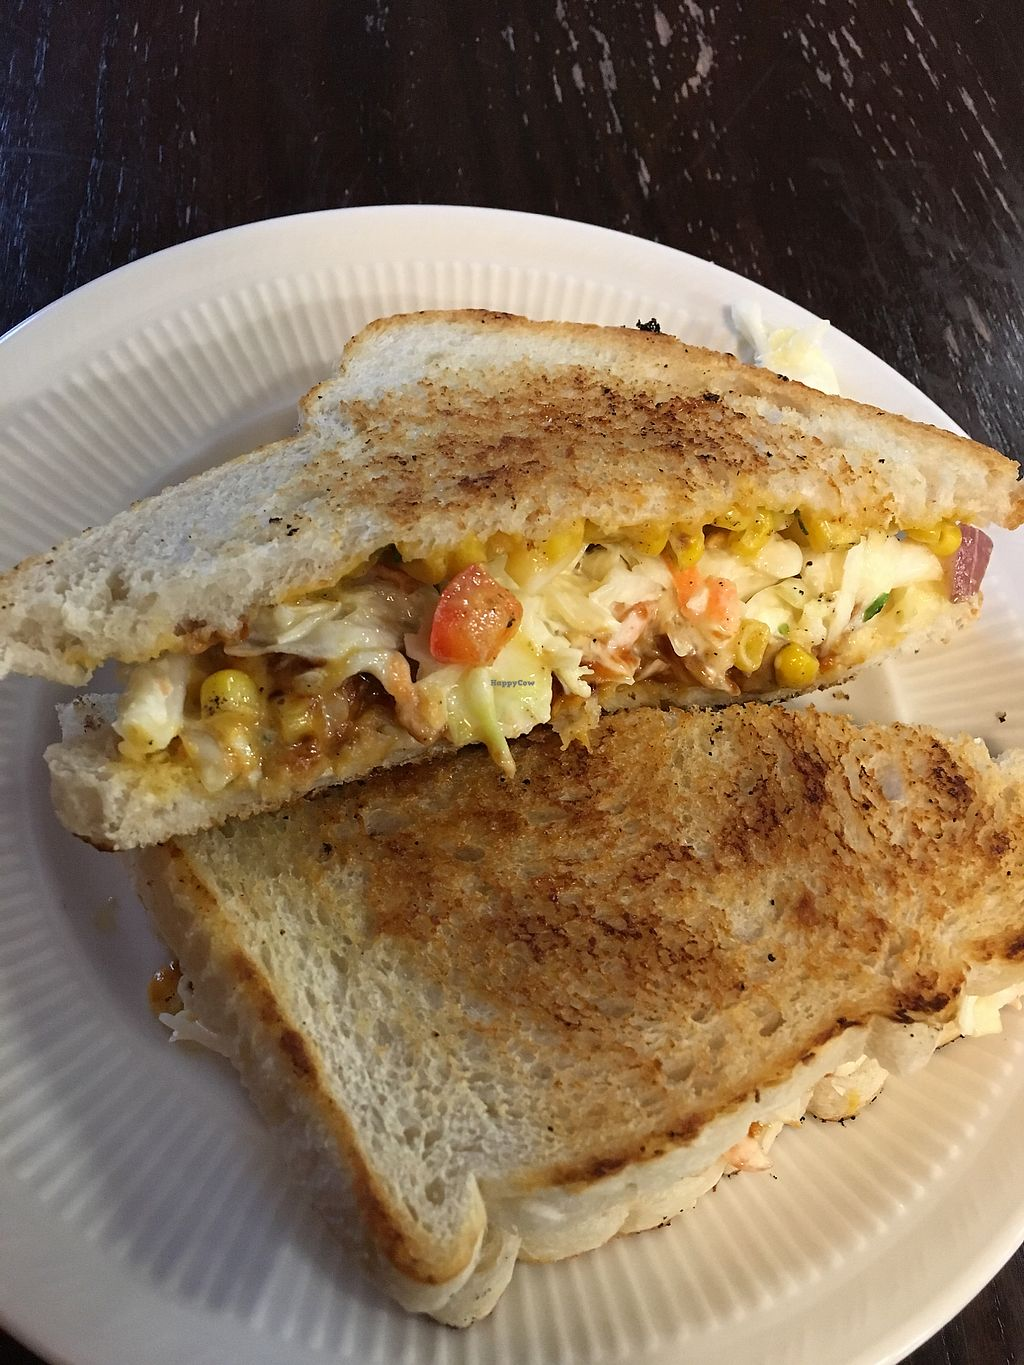 """Photo of The Farm Concessions and Café  by <a href=""""/members/profile/NathanOriol"""">NathanOriol</a> <br/>Skip's Picnic Sandwich <br/> January 12, 2018  - <a href='/contact/abuse/image/51695/345817'>Report</a>"""